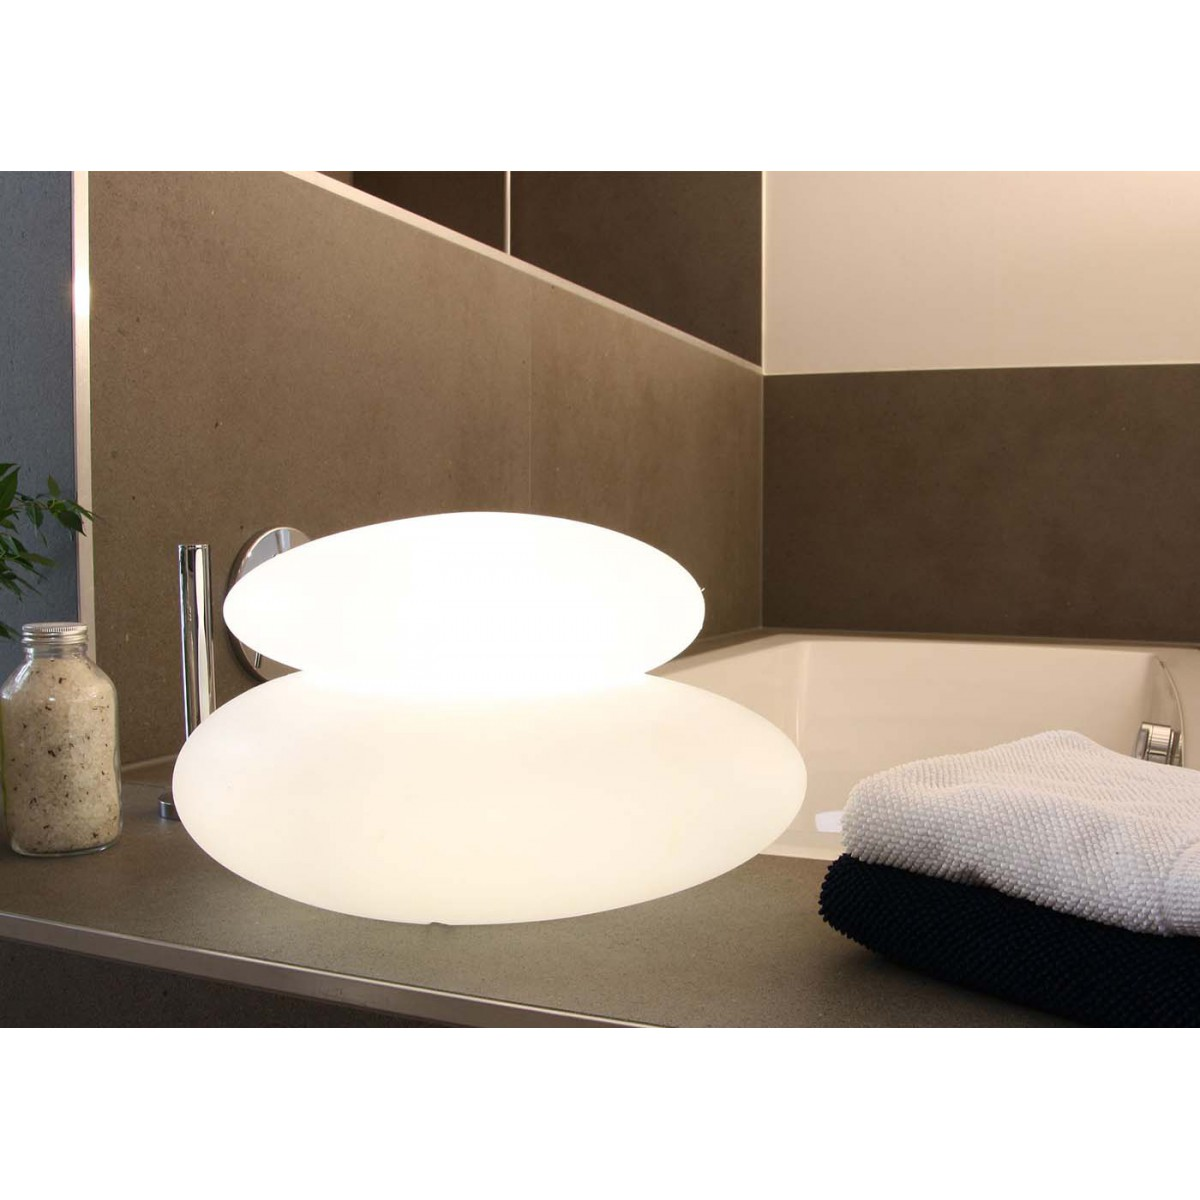 lampe int rieure ext rieure double galet lumineux 8 season 39 s design. Black Bedroom Furniture Sets. Home Design Ideas